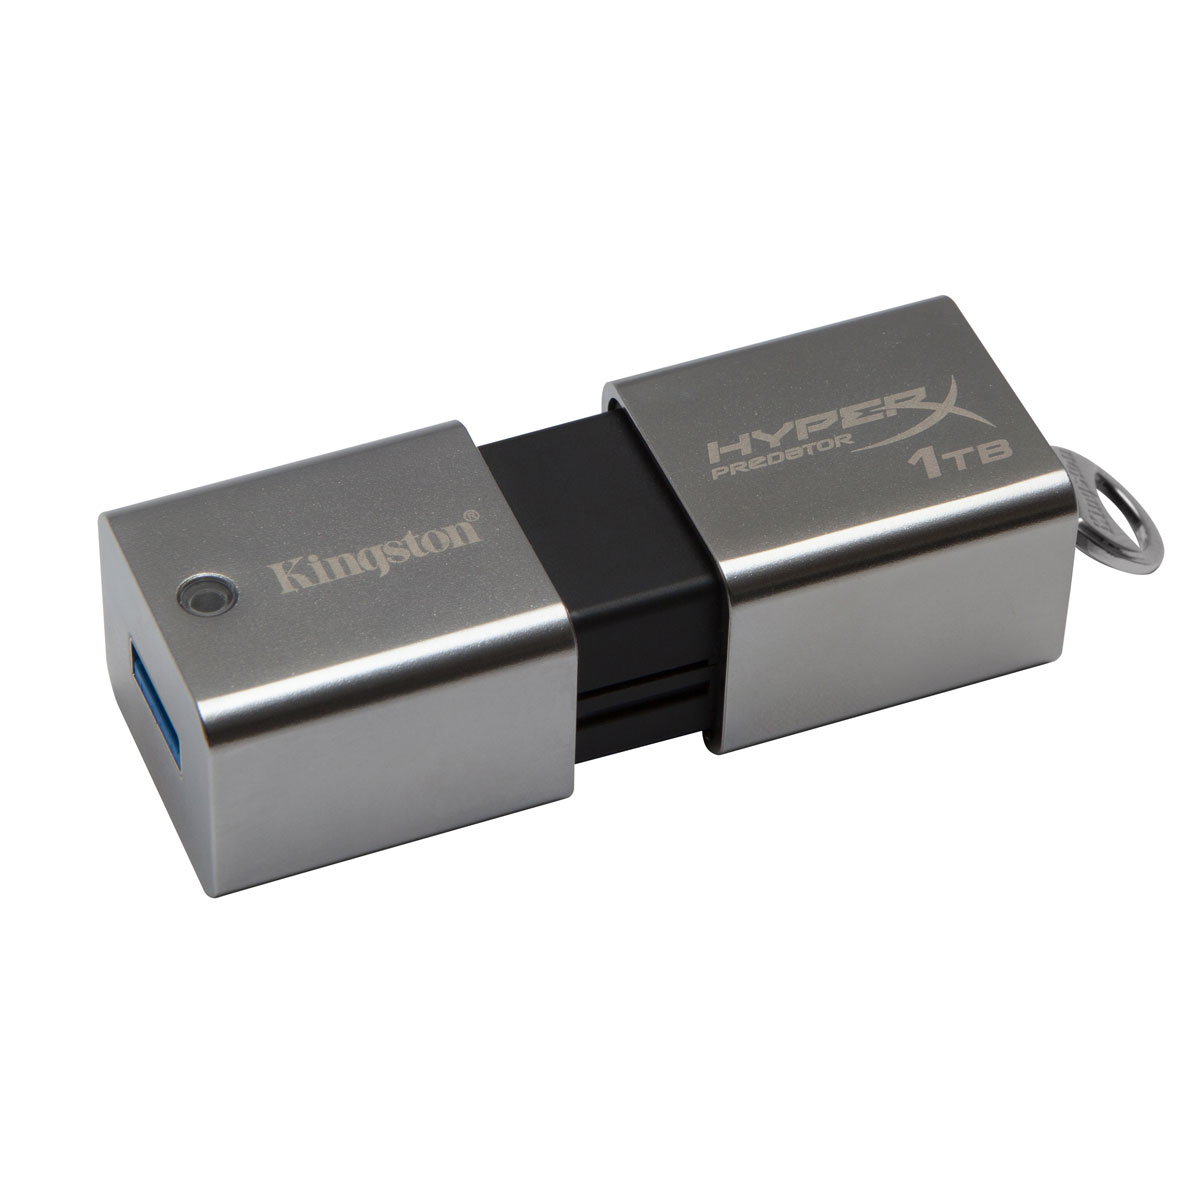 clé usb 1to